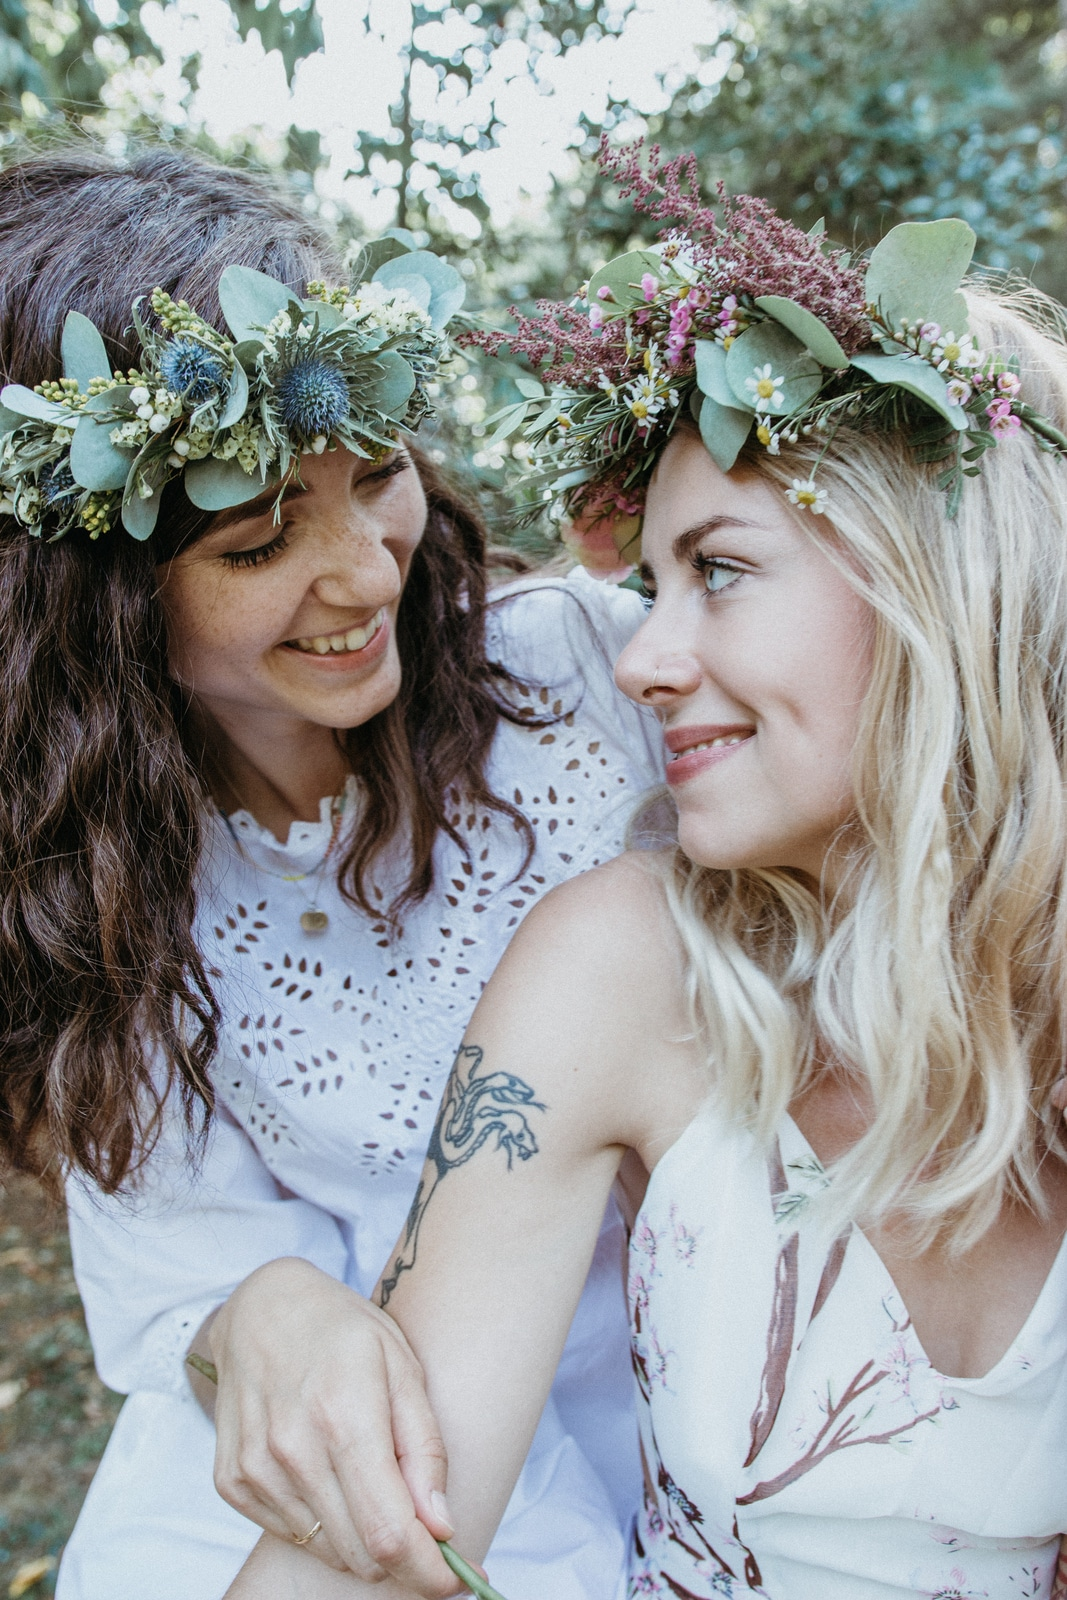 fotoshooting junggesellinnenabschied hippie picknick boho style bride to be diy workshop inspiration flowercrown blumenkranz selber machen Kurs Leipzig